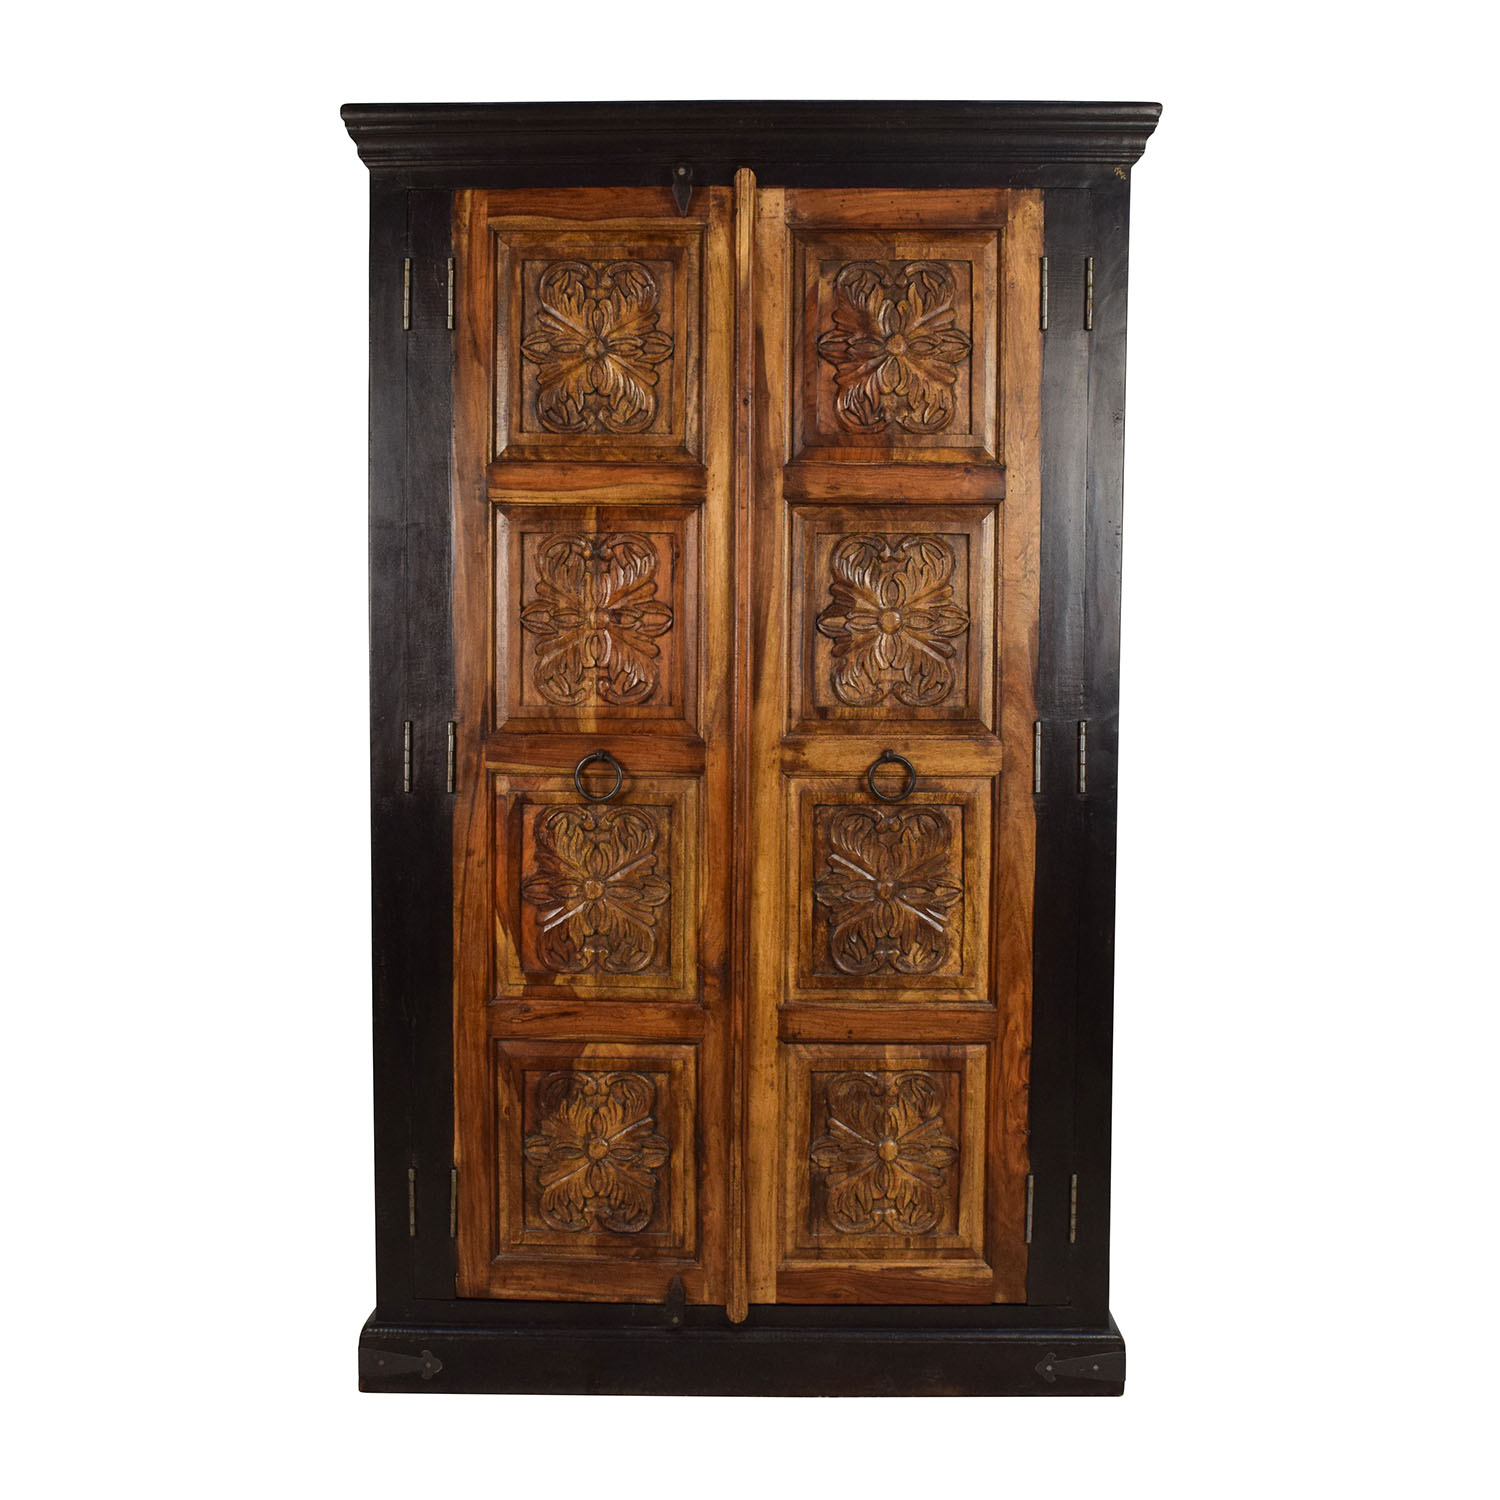 Large Carved Wooden Armoire used